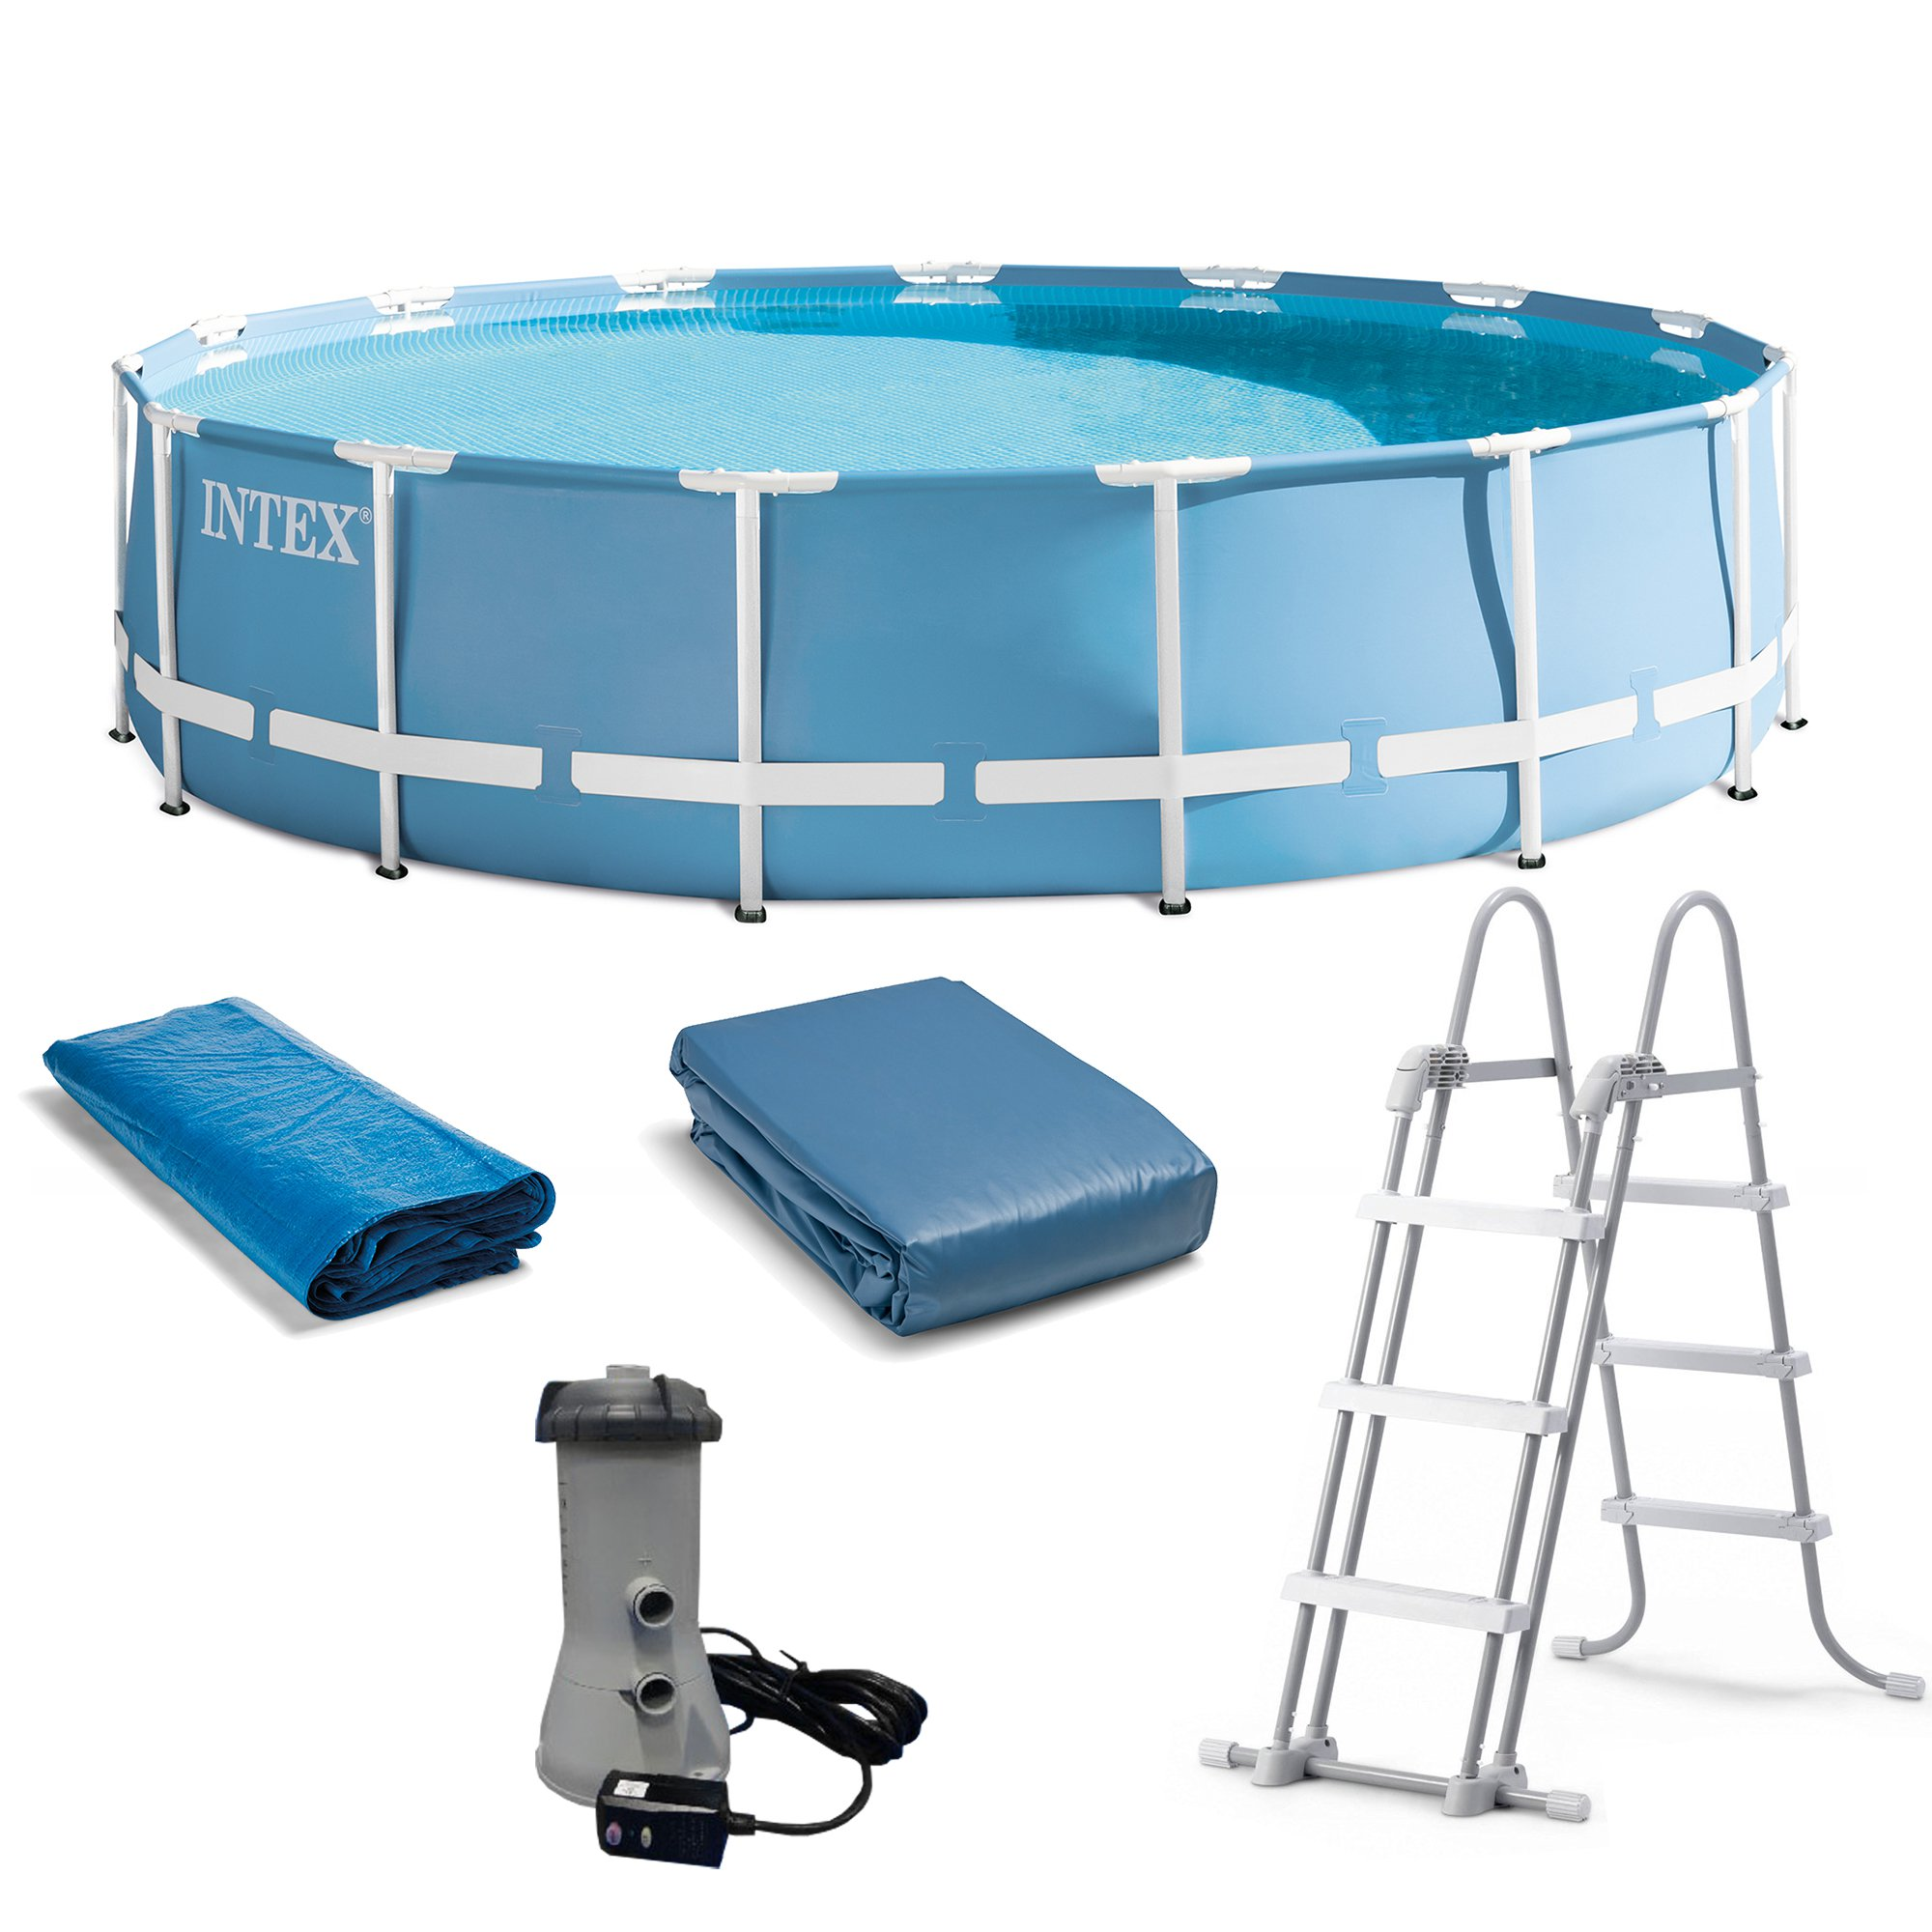 Piscina Intex Familiar Alberca Intex 4440 Galones 15 Pies X 48 Pulgadas